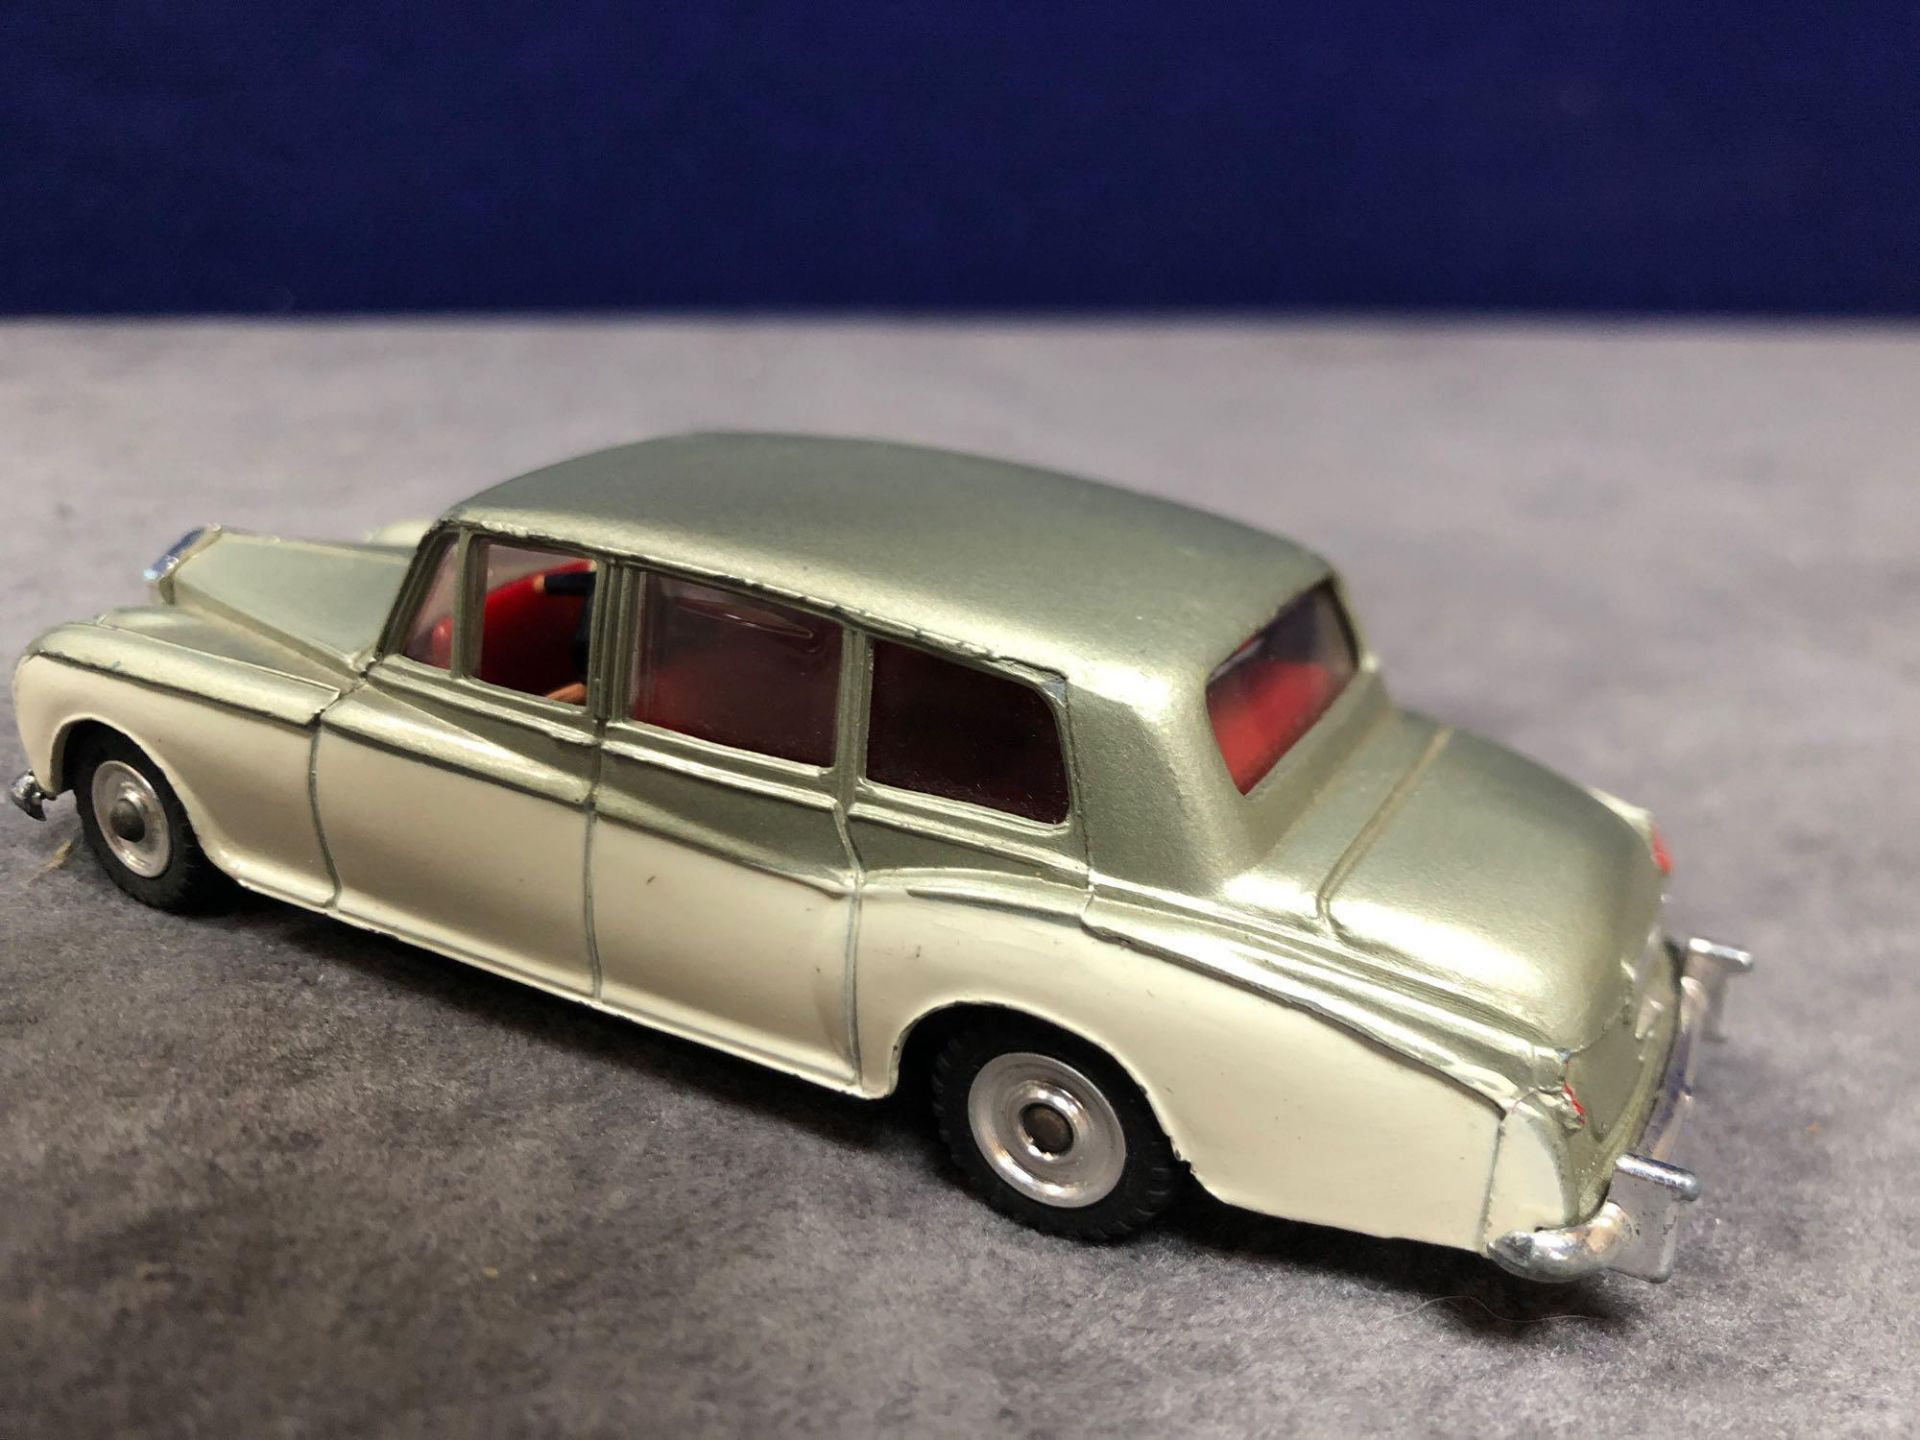 Dinky #198 Rolls Royce Phantom V Green/Cream - Concave Hubs, 1962 - 1969 Unboxed excellent model - Image 3 of 4